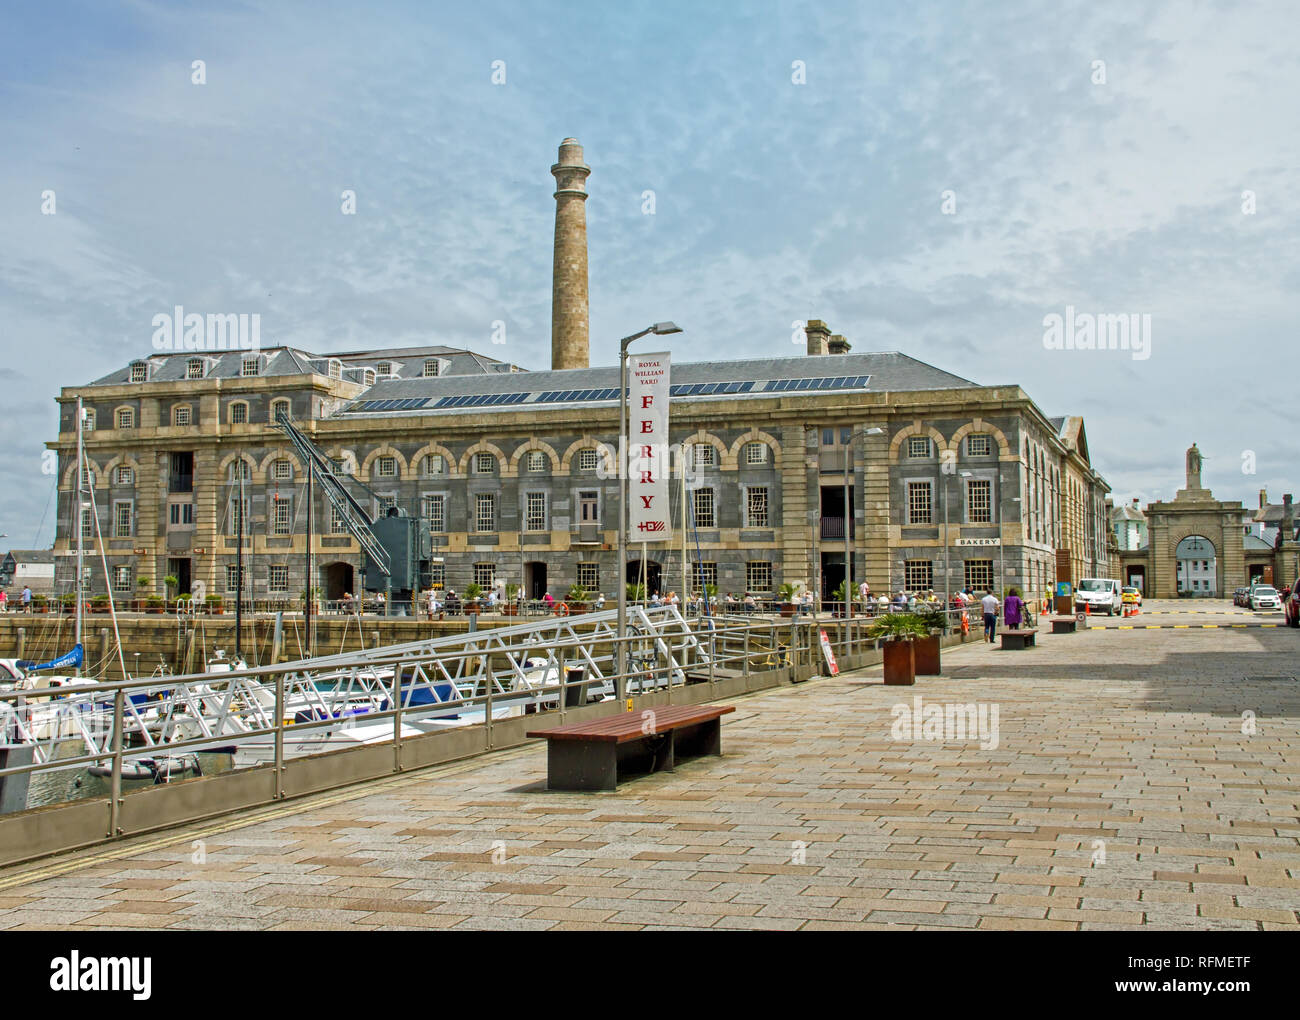 Mills Bakery block at the Royal William Yard Plymouth. Undergoing regeneration a former Victualling Yard returned to civil use. Housing etc - Stock Image